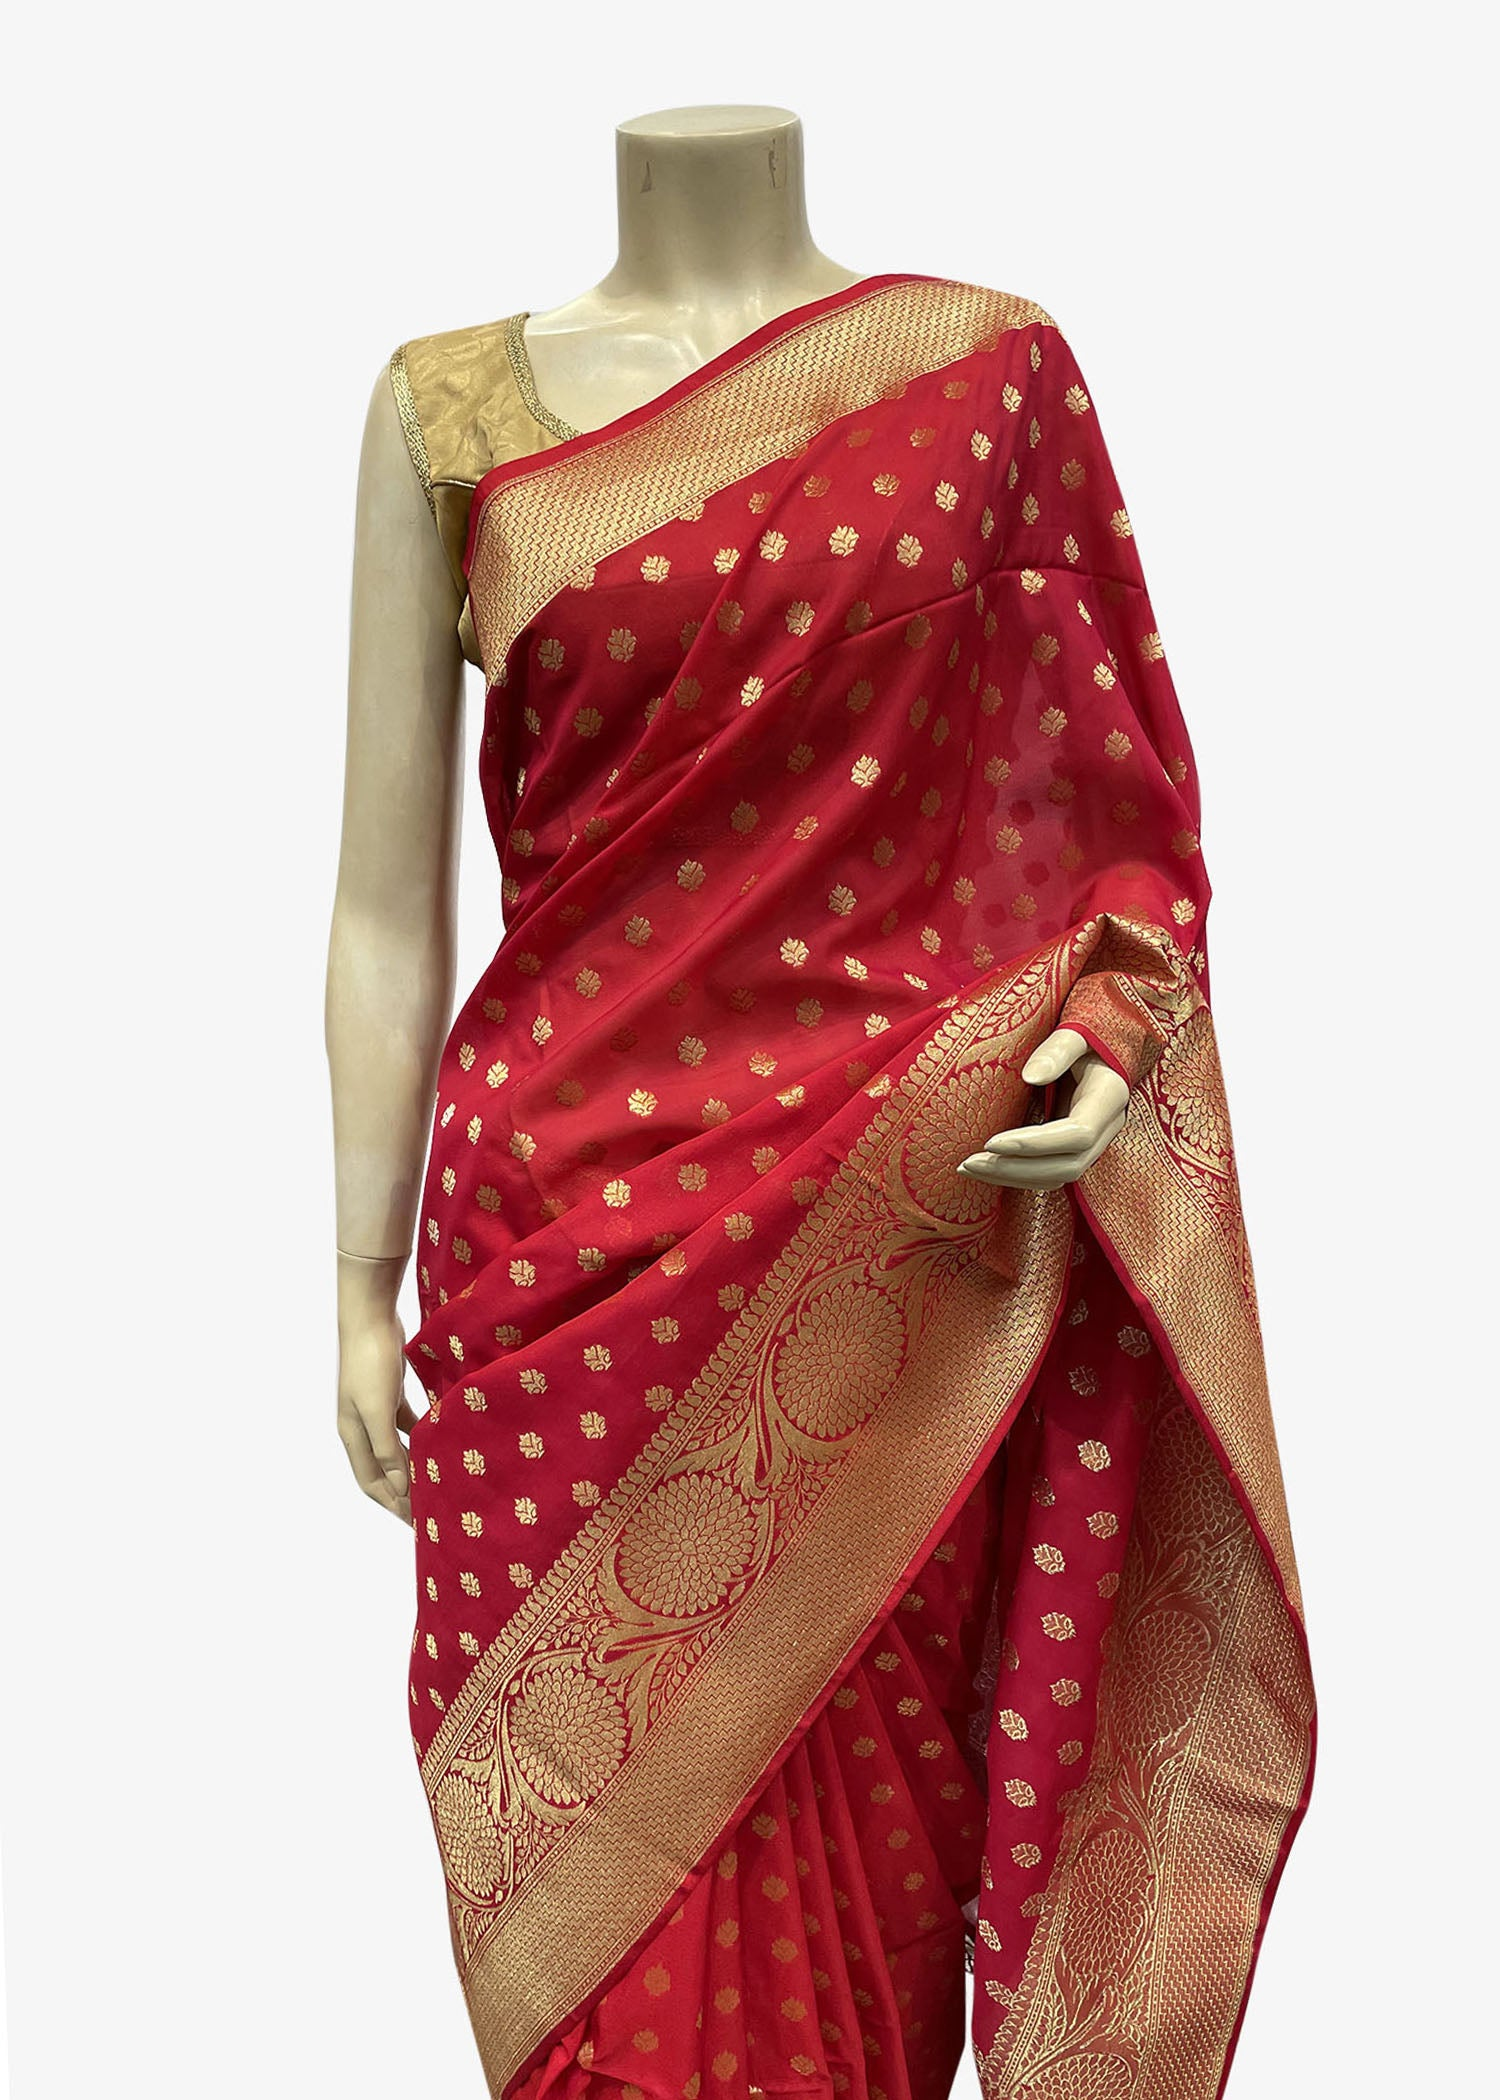 Red Banarasi Silk Saree With Gold Zari Weaved Buttis And Floral Pattern On The Pallu